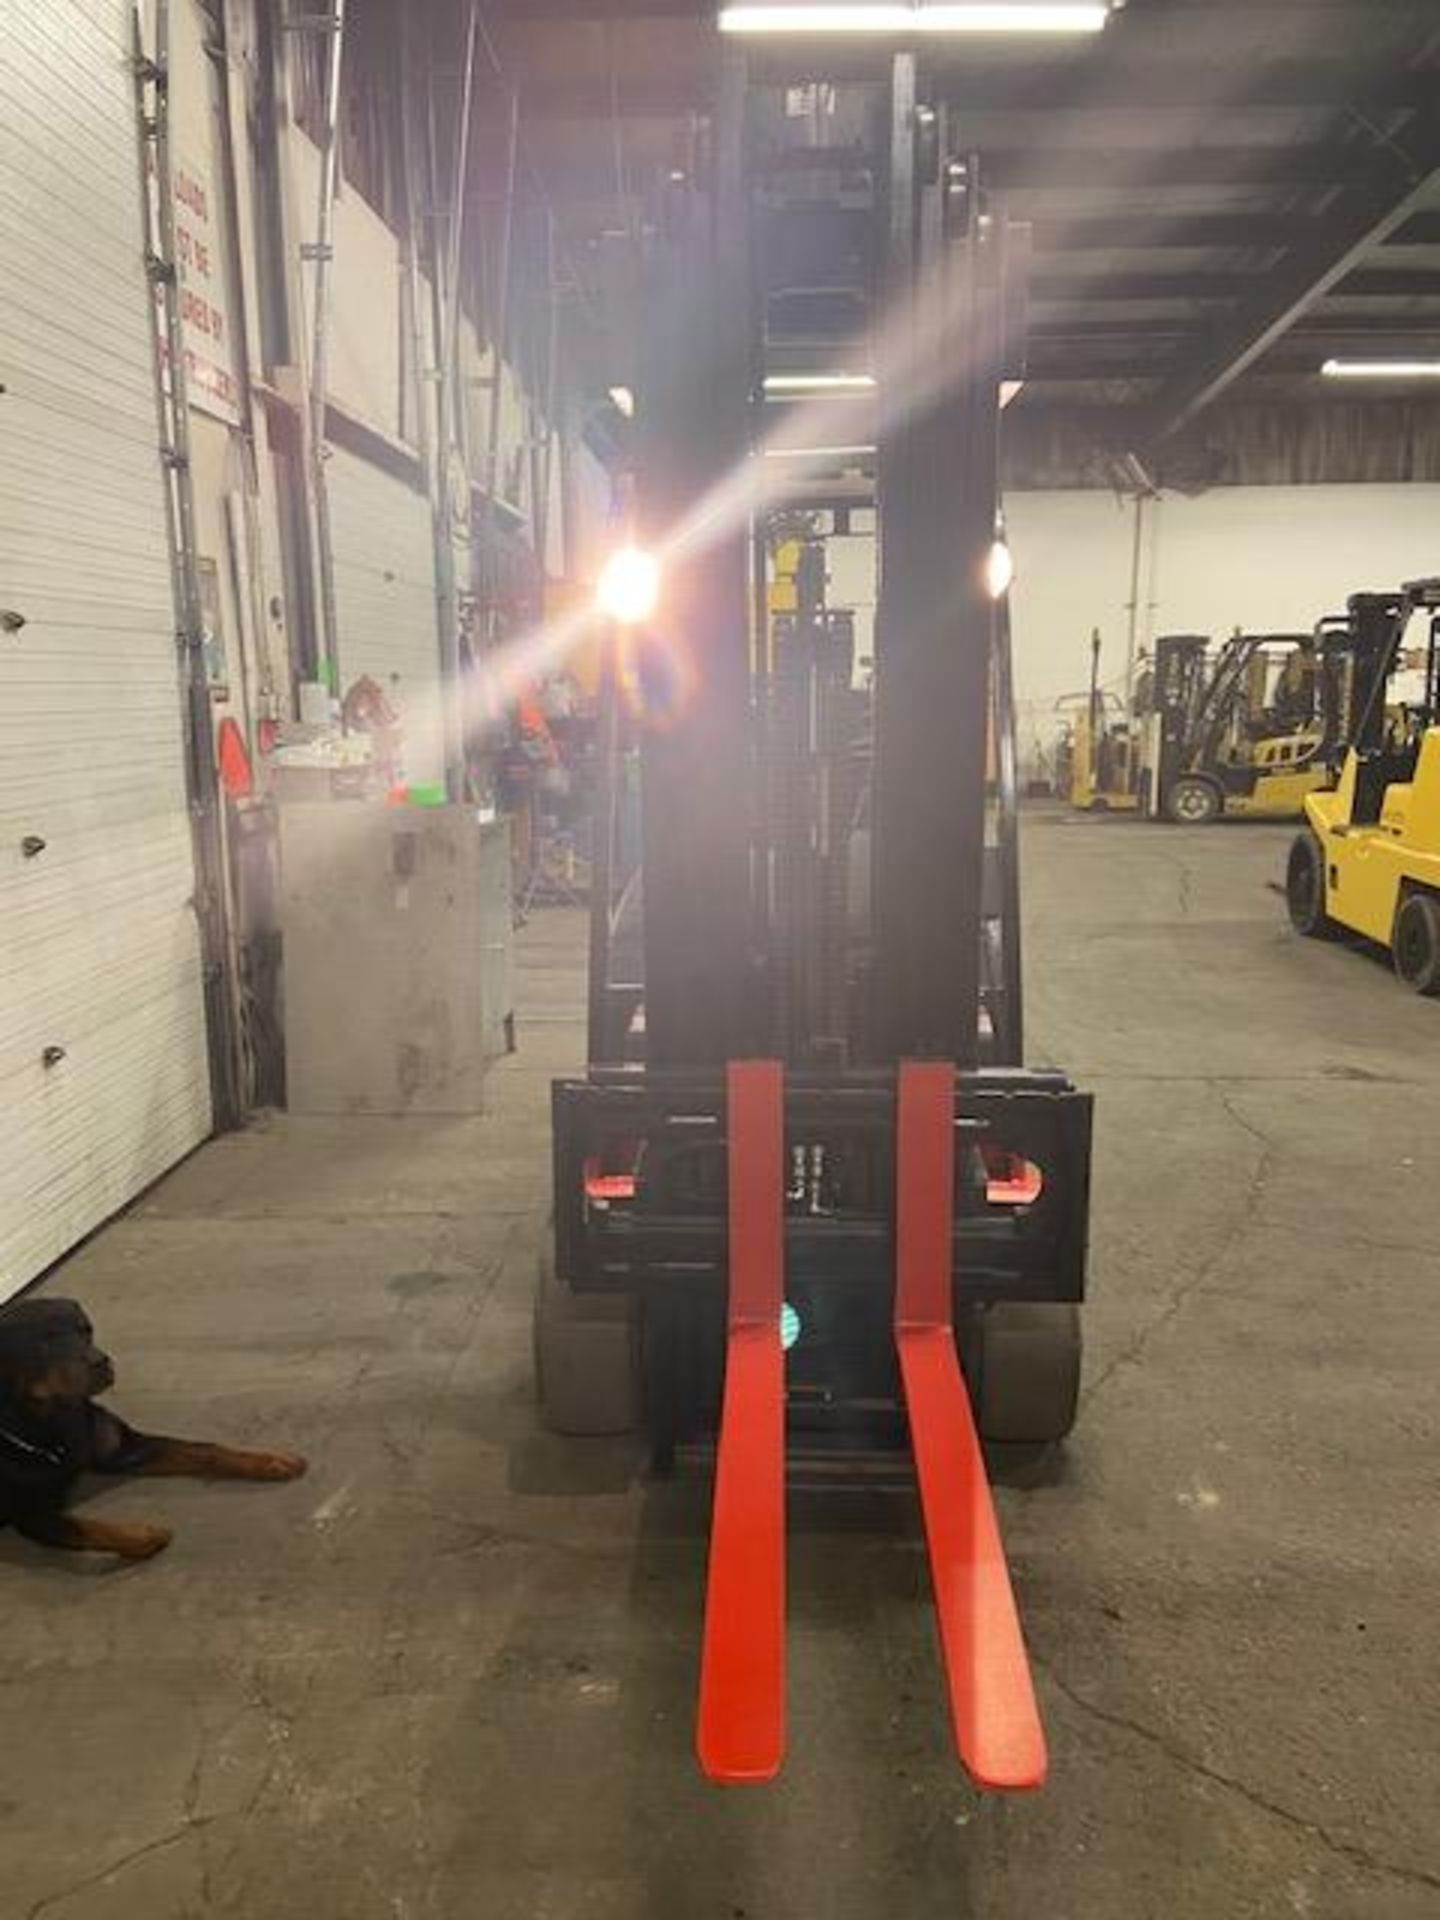 FREE CUSTOMS - LINDE 5000lbs Capacity Forklift 4-STAGE Mast - Electric unit with sideshift - Image 2 of 3